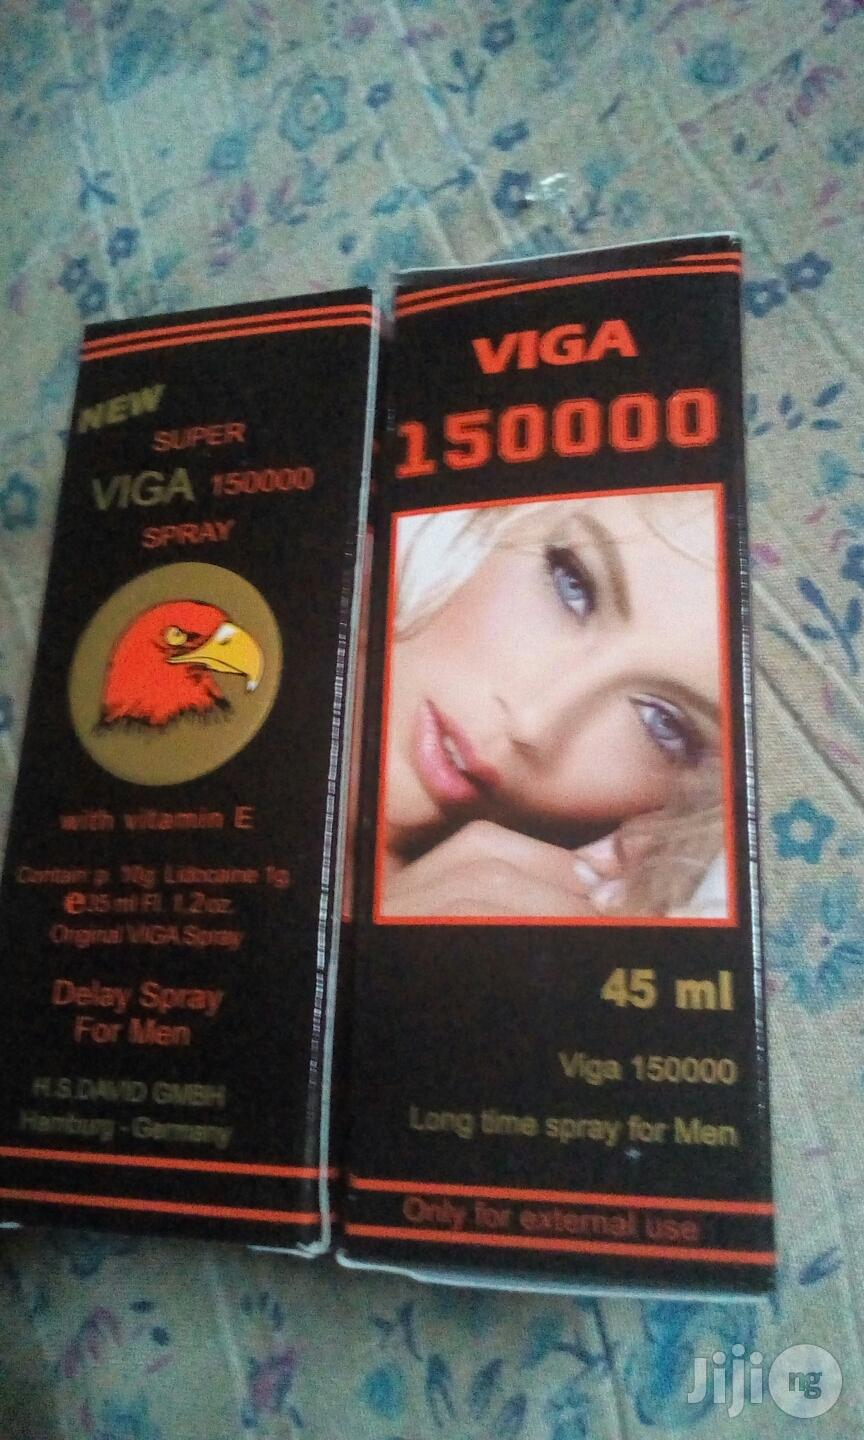 Super Viga 150000 Penis Spray For Longlasting | Sexual Wellness for sale in Lagos State, Nigeria